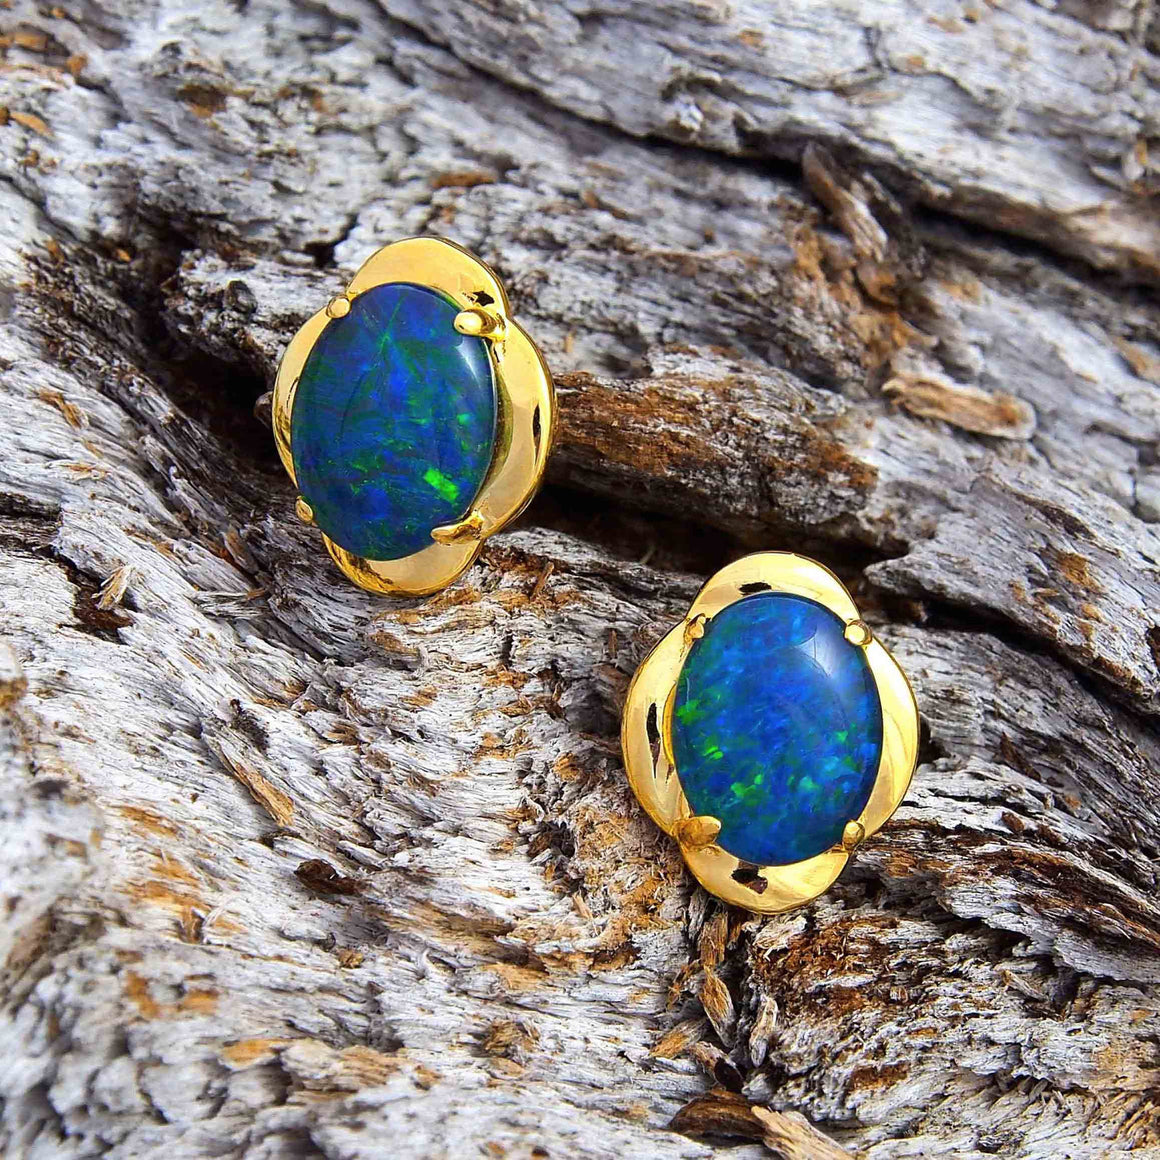 Stylish gold plated sterling silver scallop design stud earrings claw set with blue and green oval triplet opals